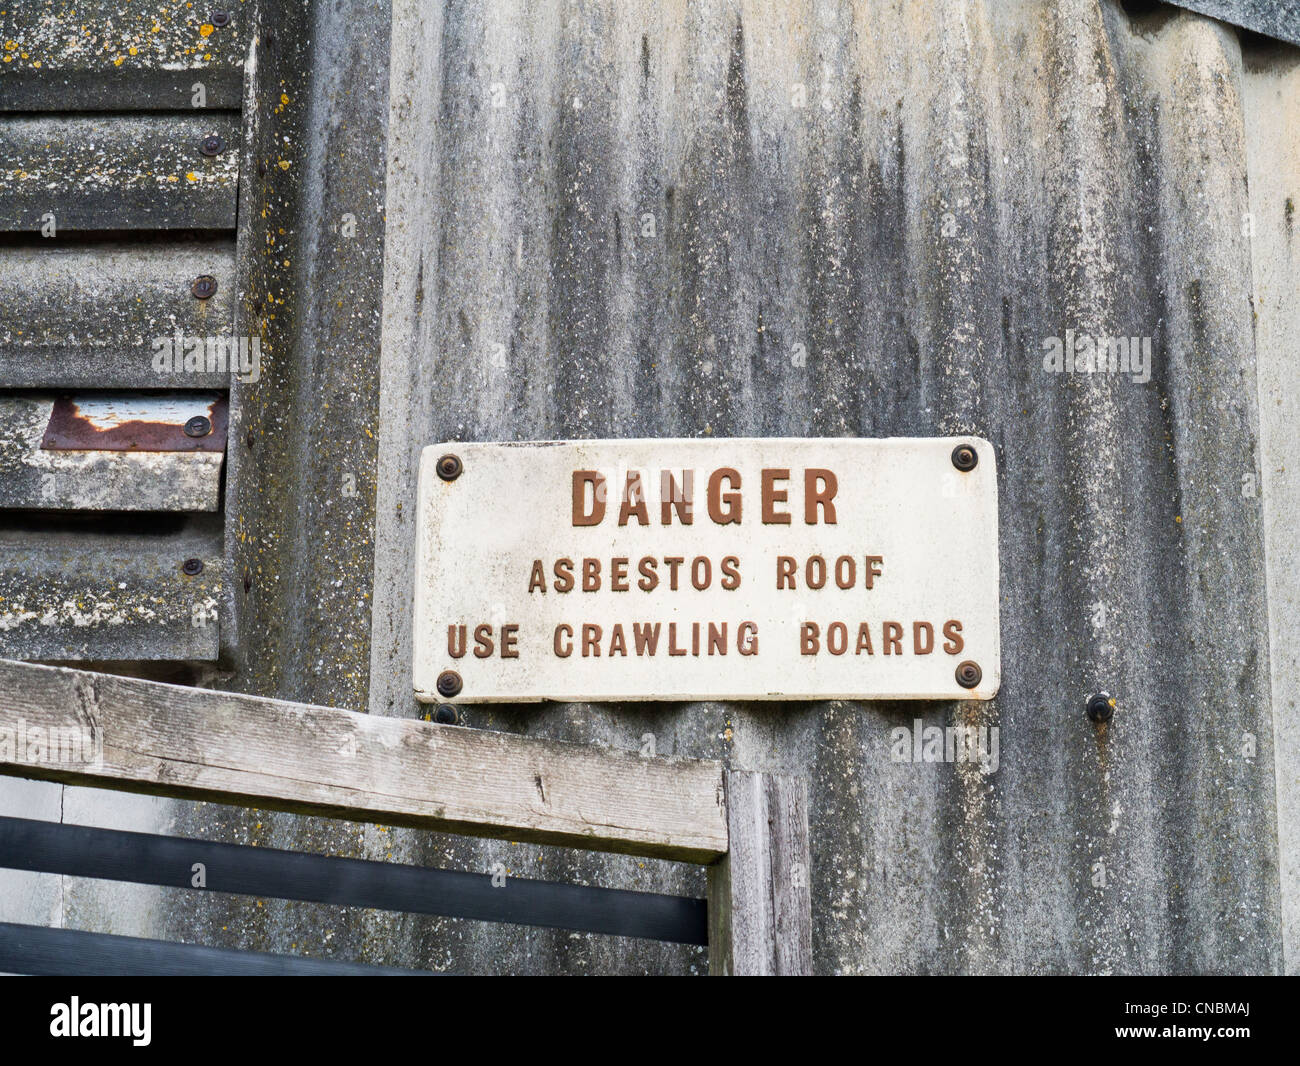 Danger Sign on an Industrial Building with Corrugated Asbestos Roof and Wall - Stock Image